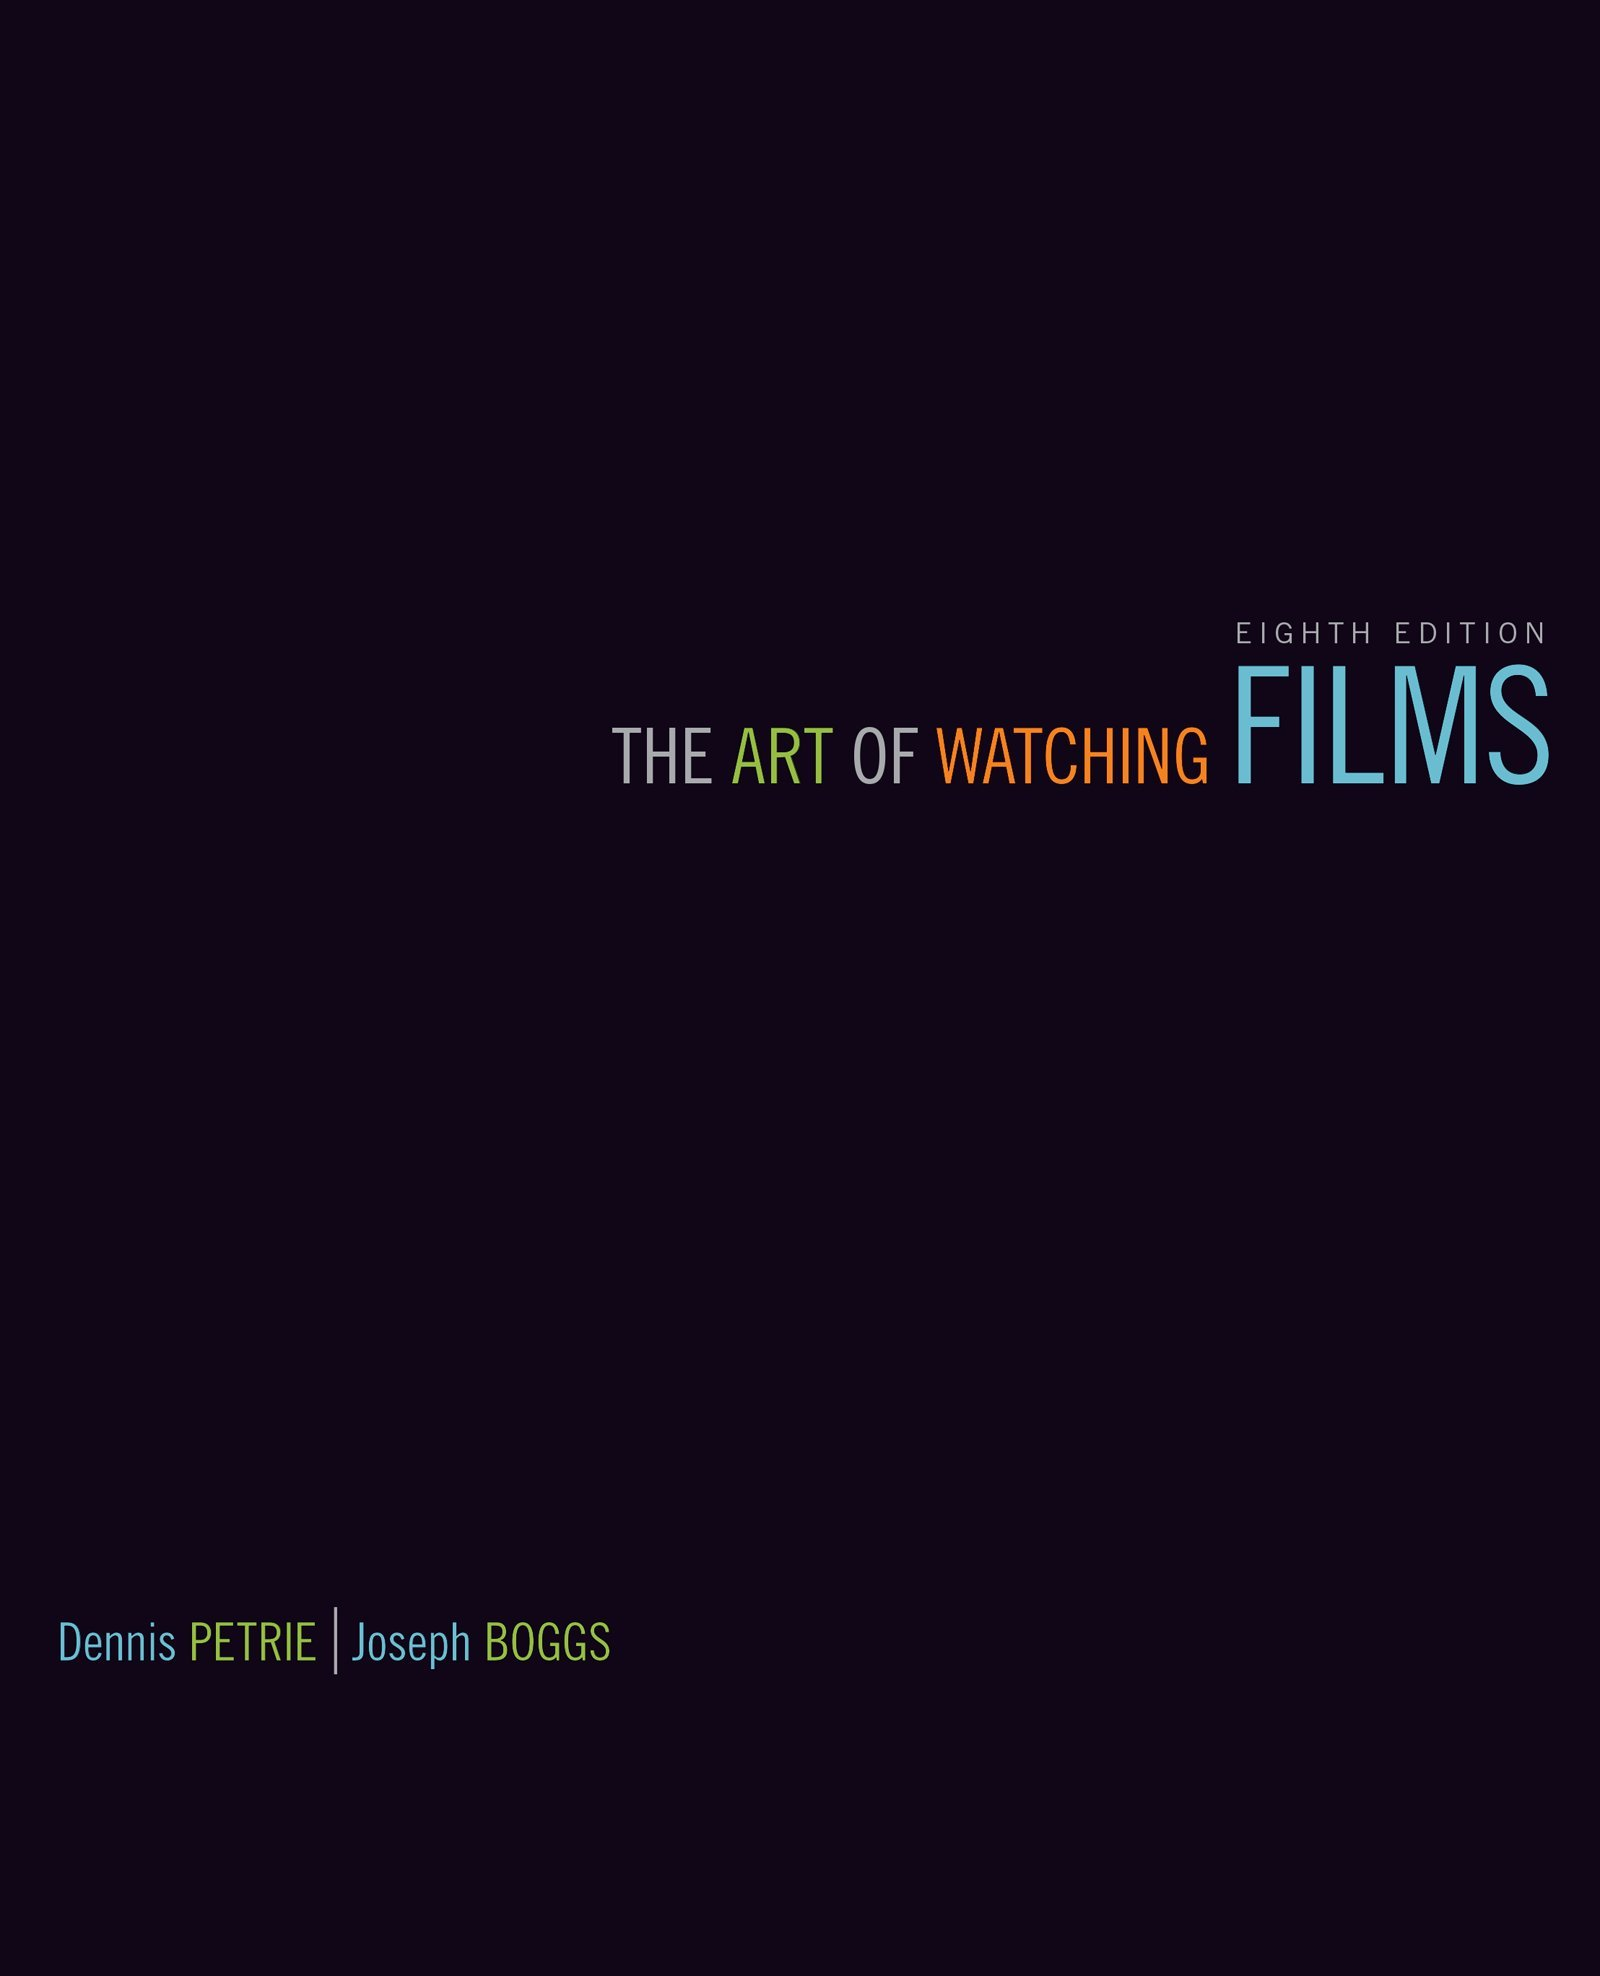 The Art of Watching Films by McGraw-Hill Education